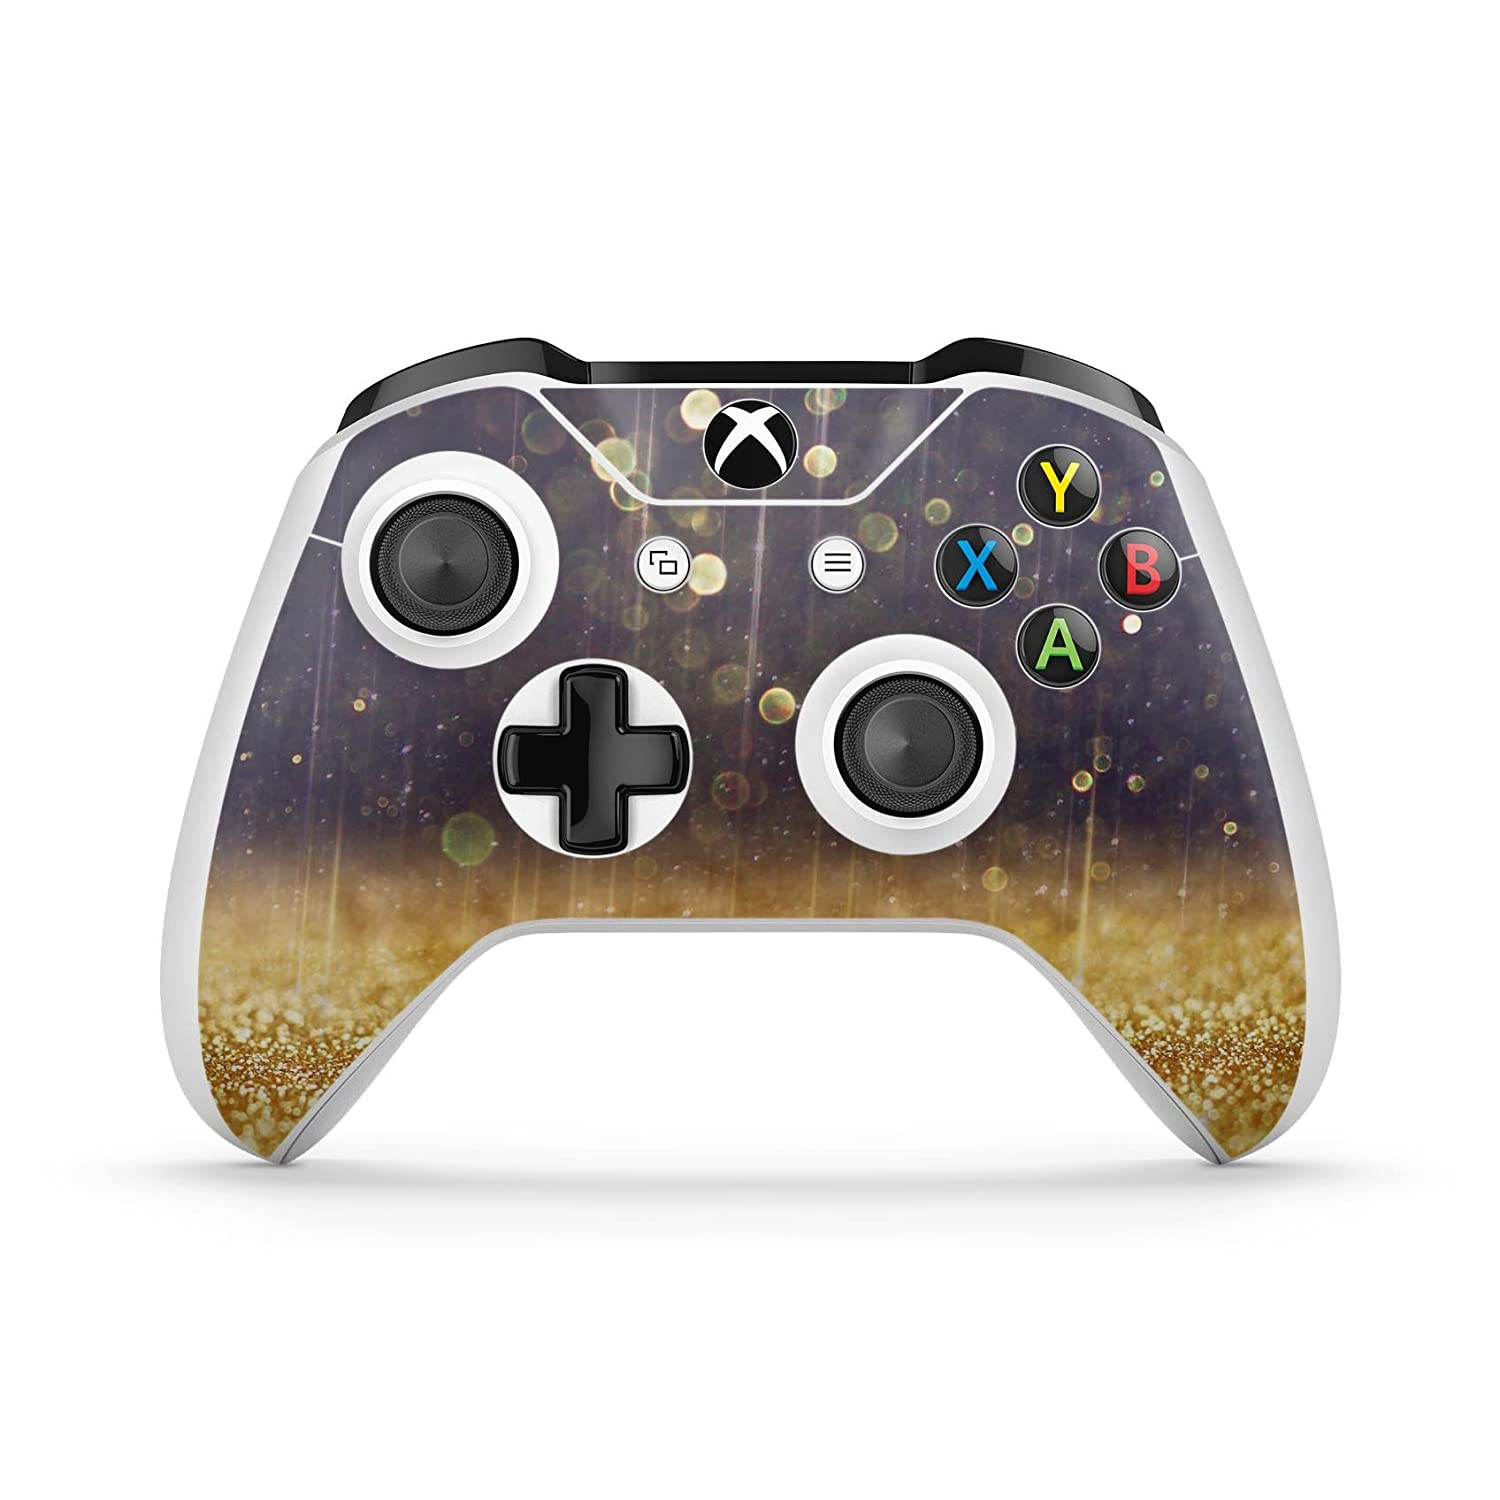 Raining Gold and Purple Sparkle - Protective Vinyl DesignSkinz Decal Sticker Skin-Kit for the Microsoft Xbox ONE / ONE S Controller